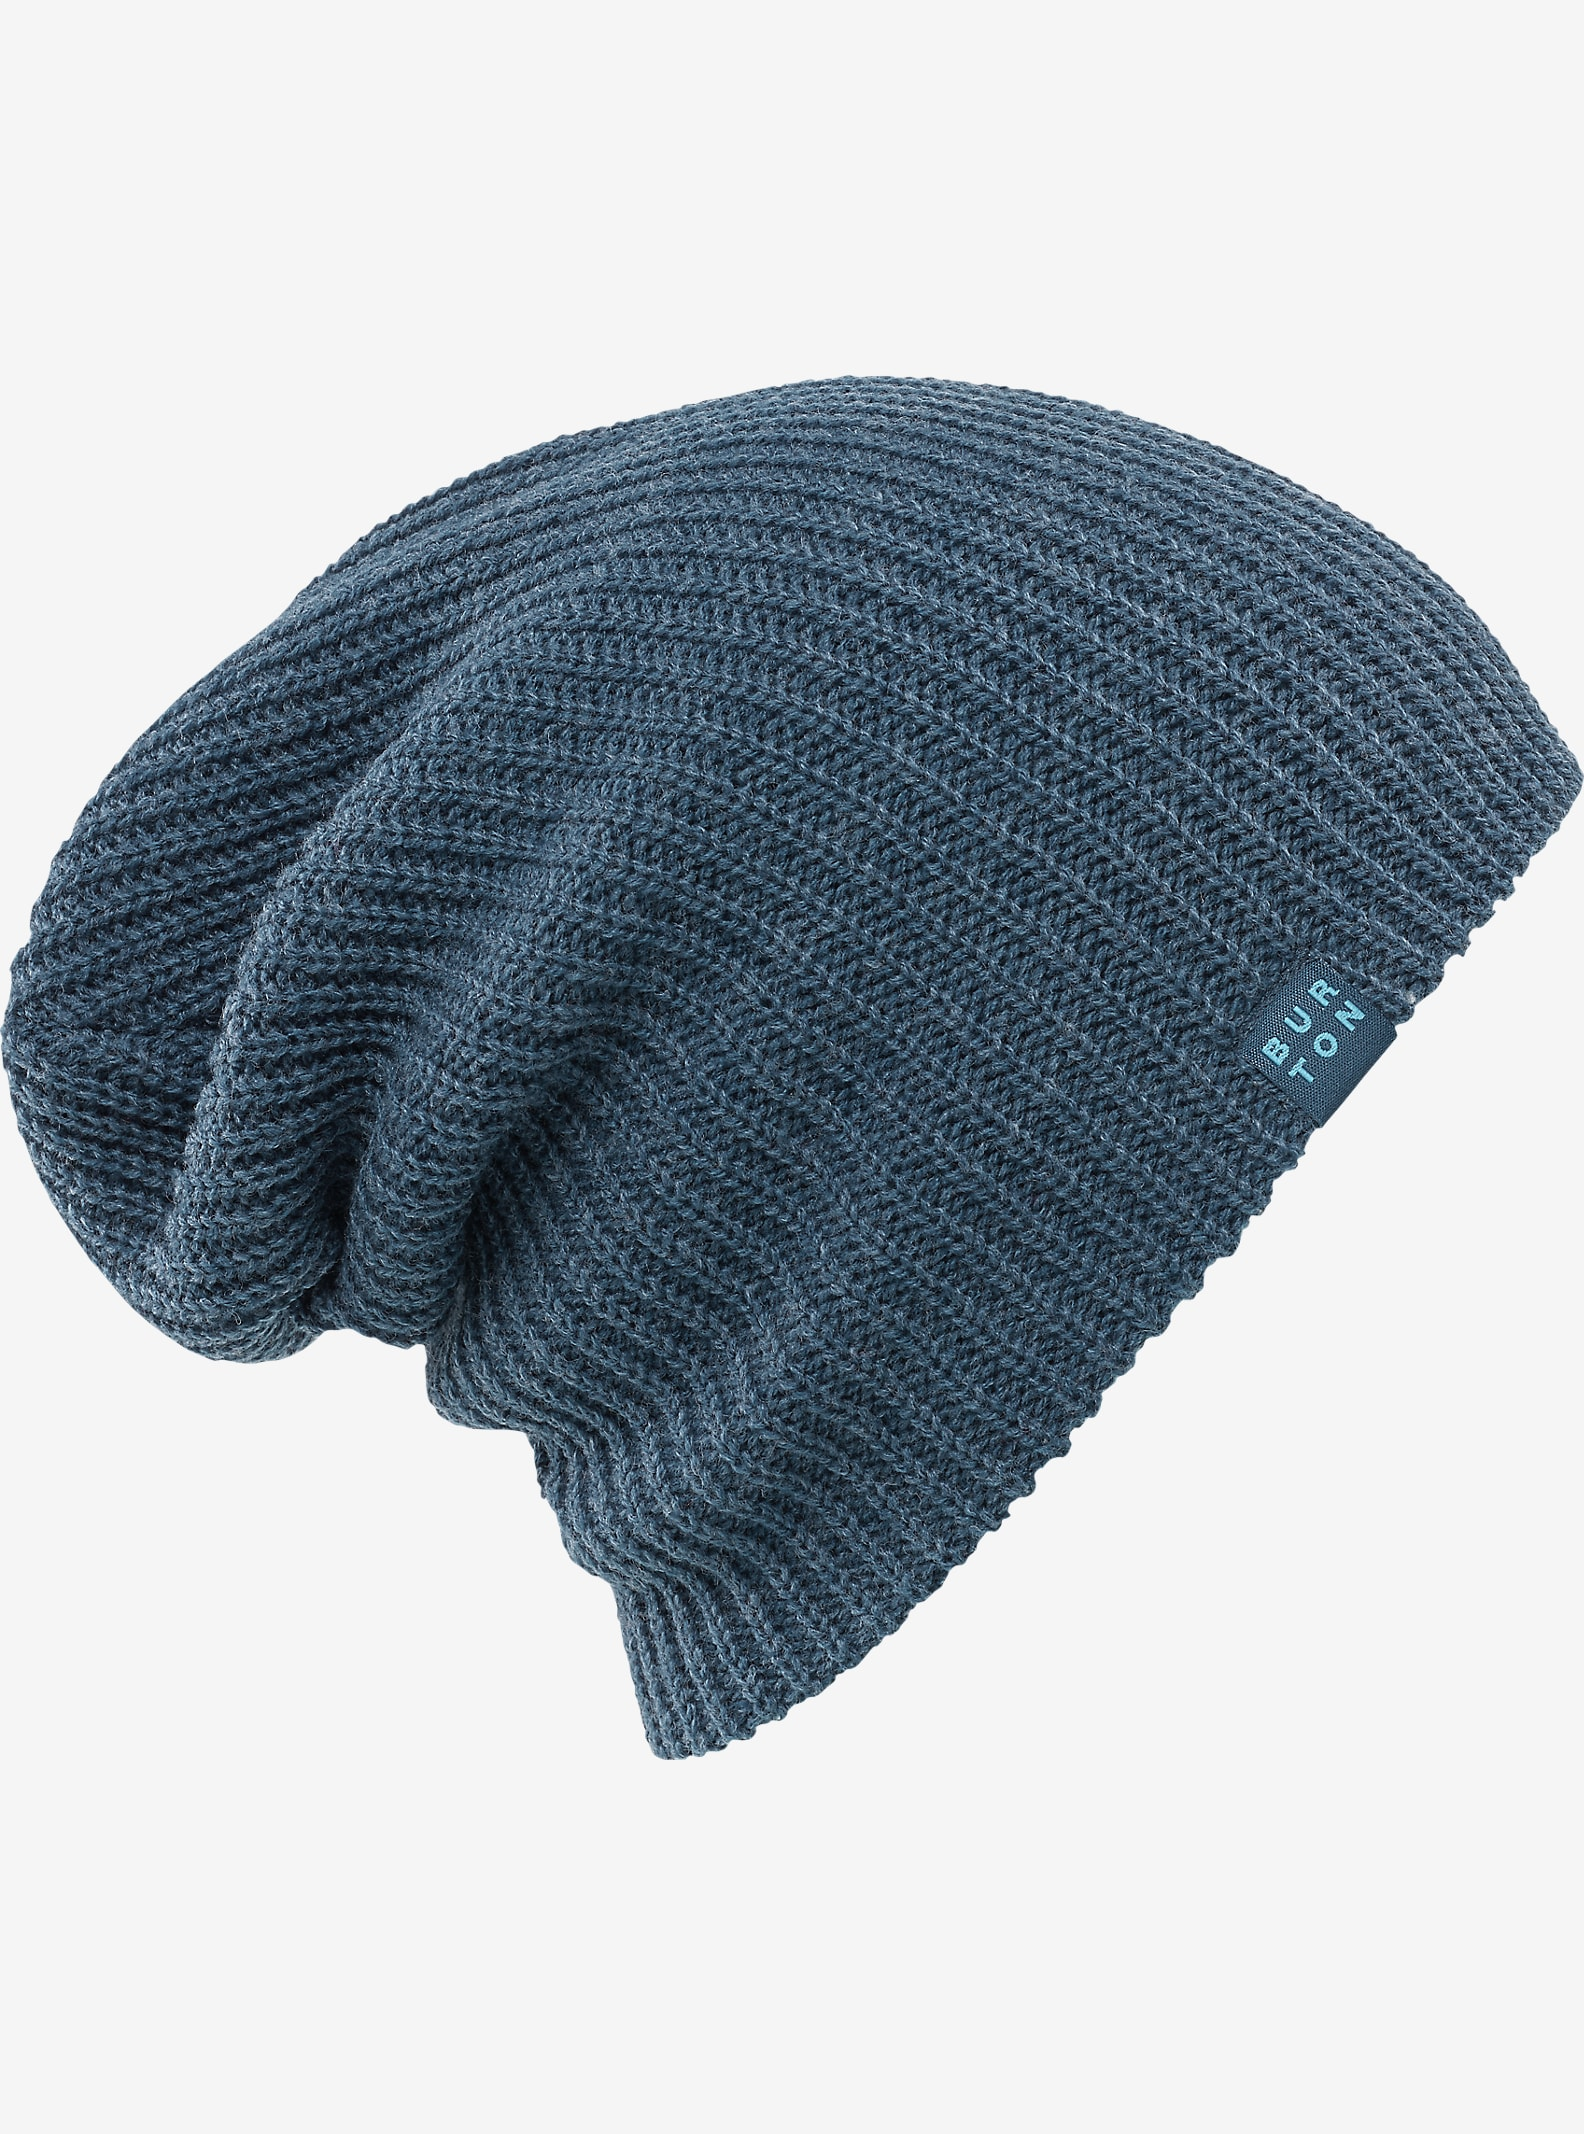 Burton Truckstop Beanie shown in Washed Blue Heather